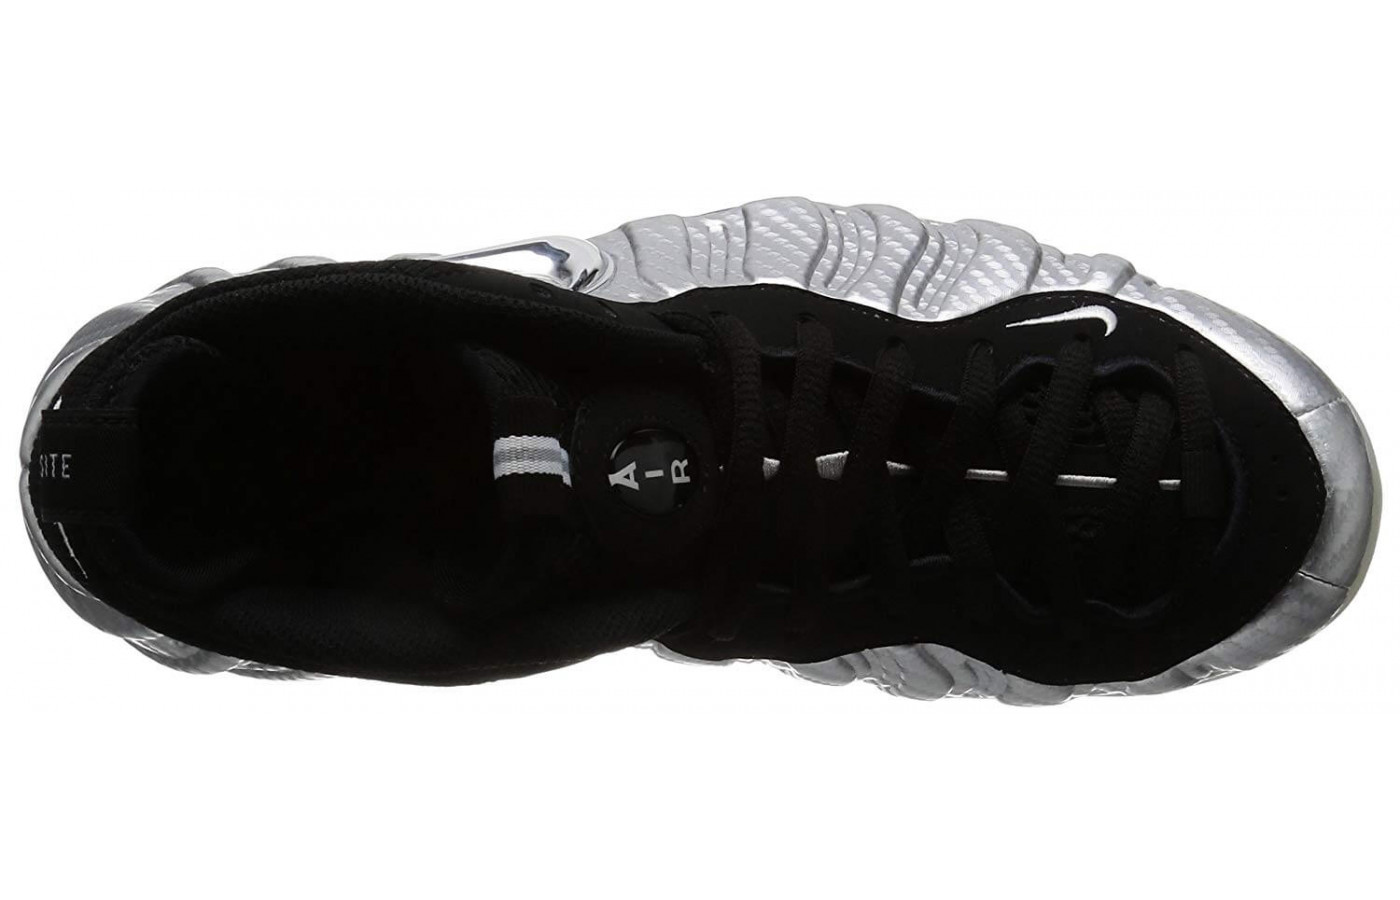 Nike Air Foamposite Pro top